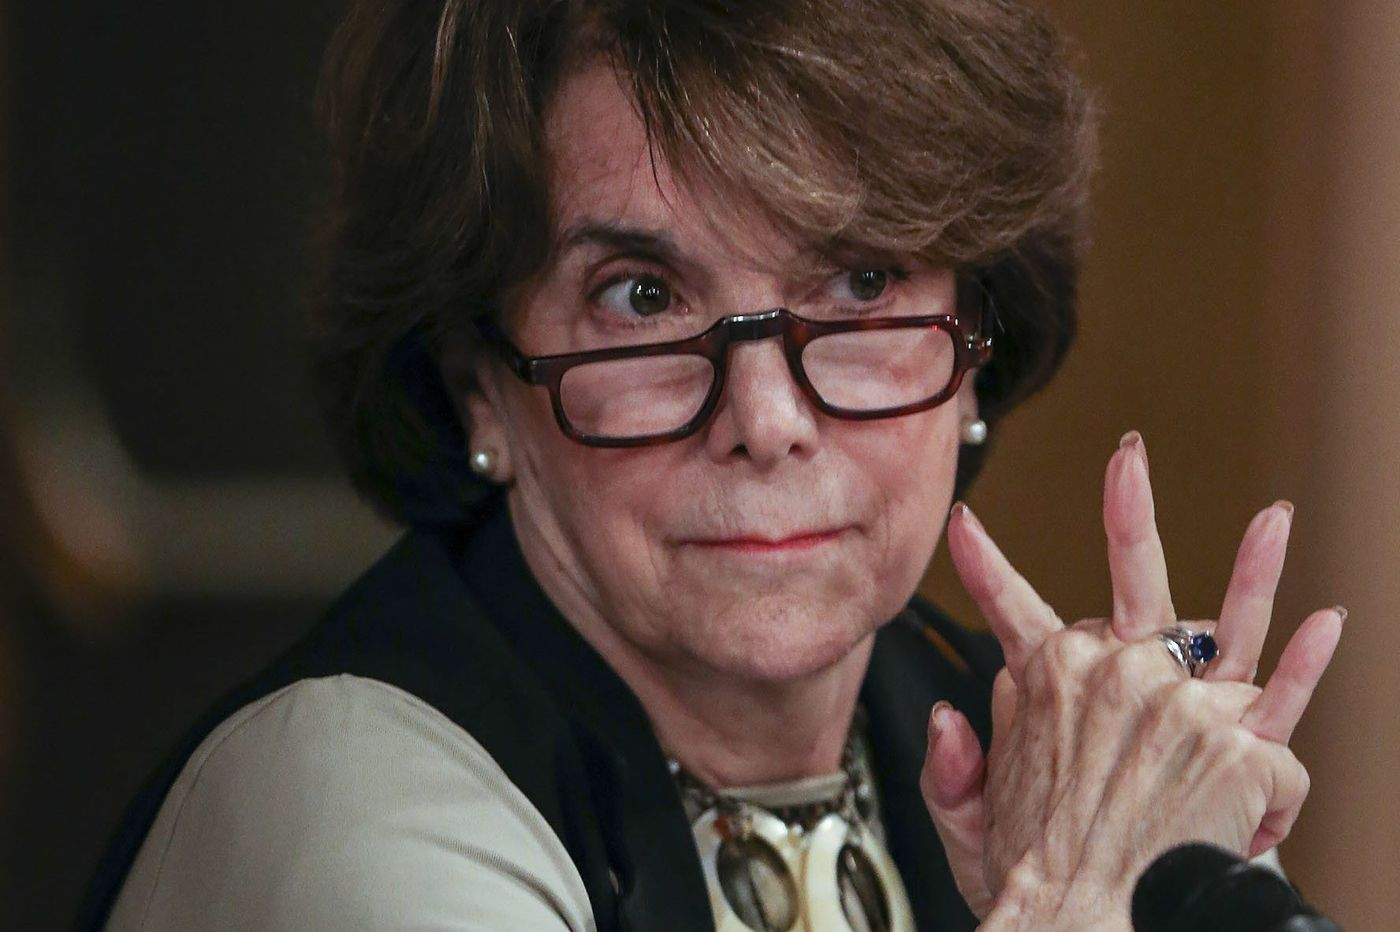 Ex-U.S. Rep. Marjorie Margolies: I didn't think I did anything illegal